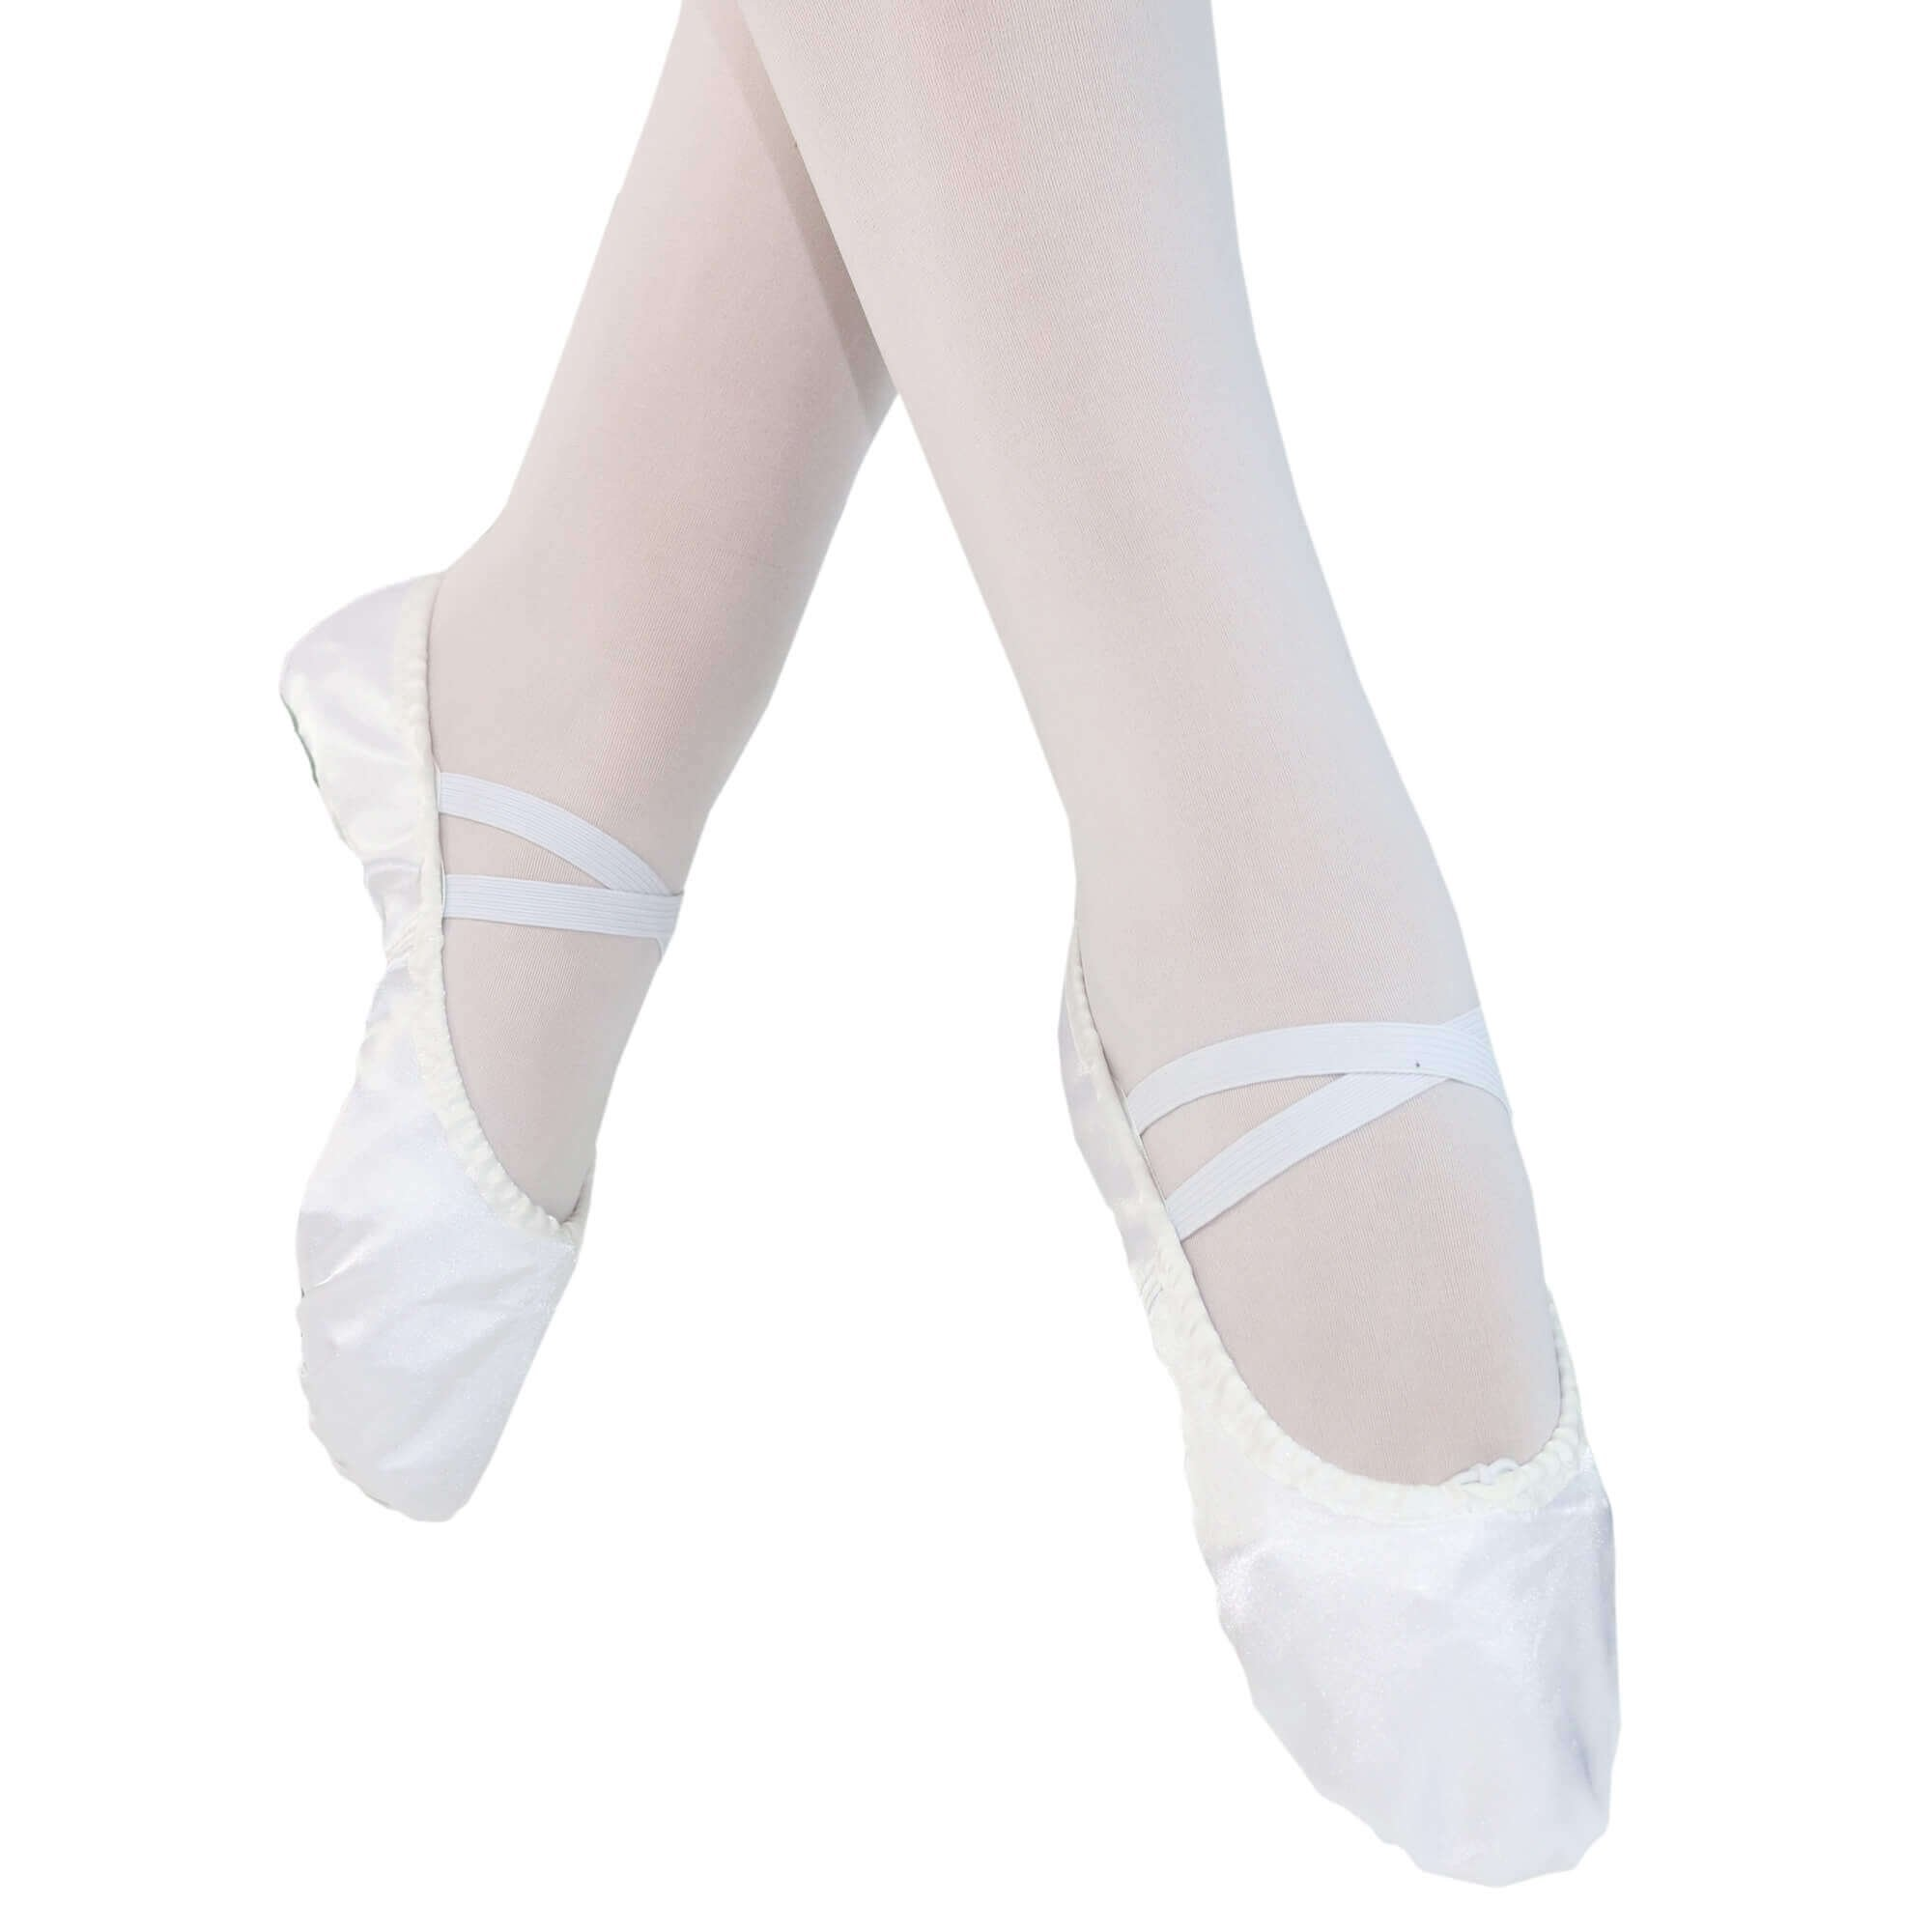 a2b06a0a2da6 Danzcue Adult Split Sole Satin Ballet Slipper